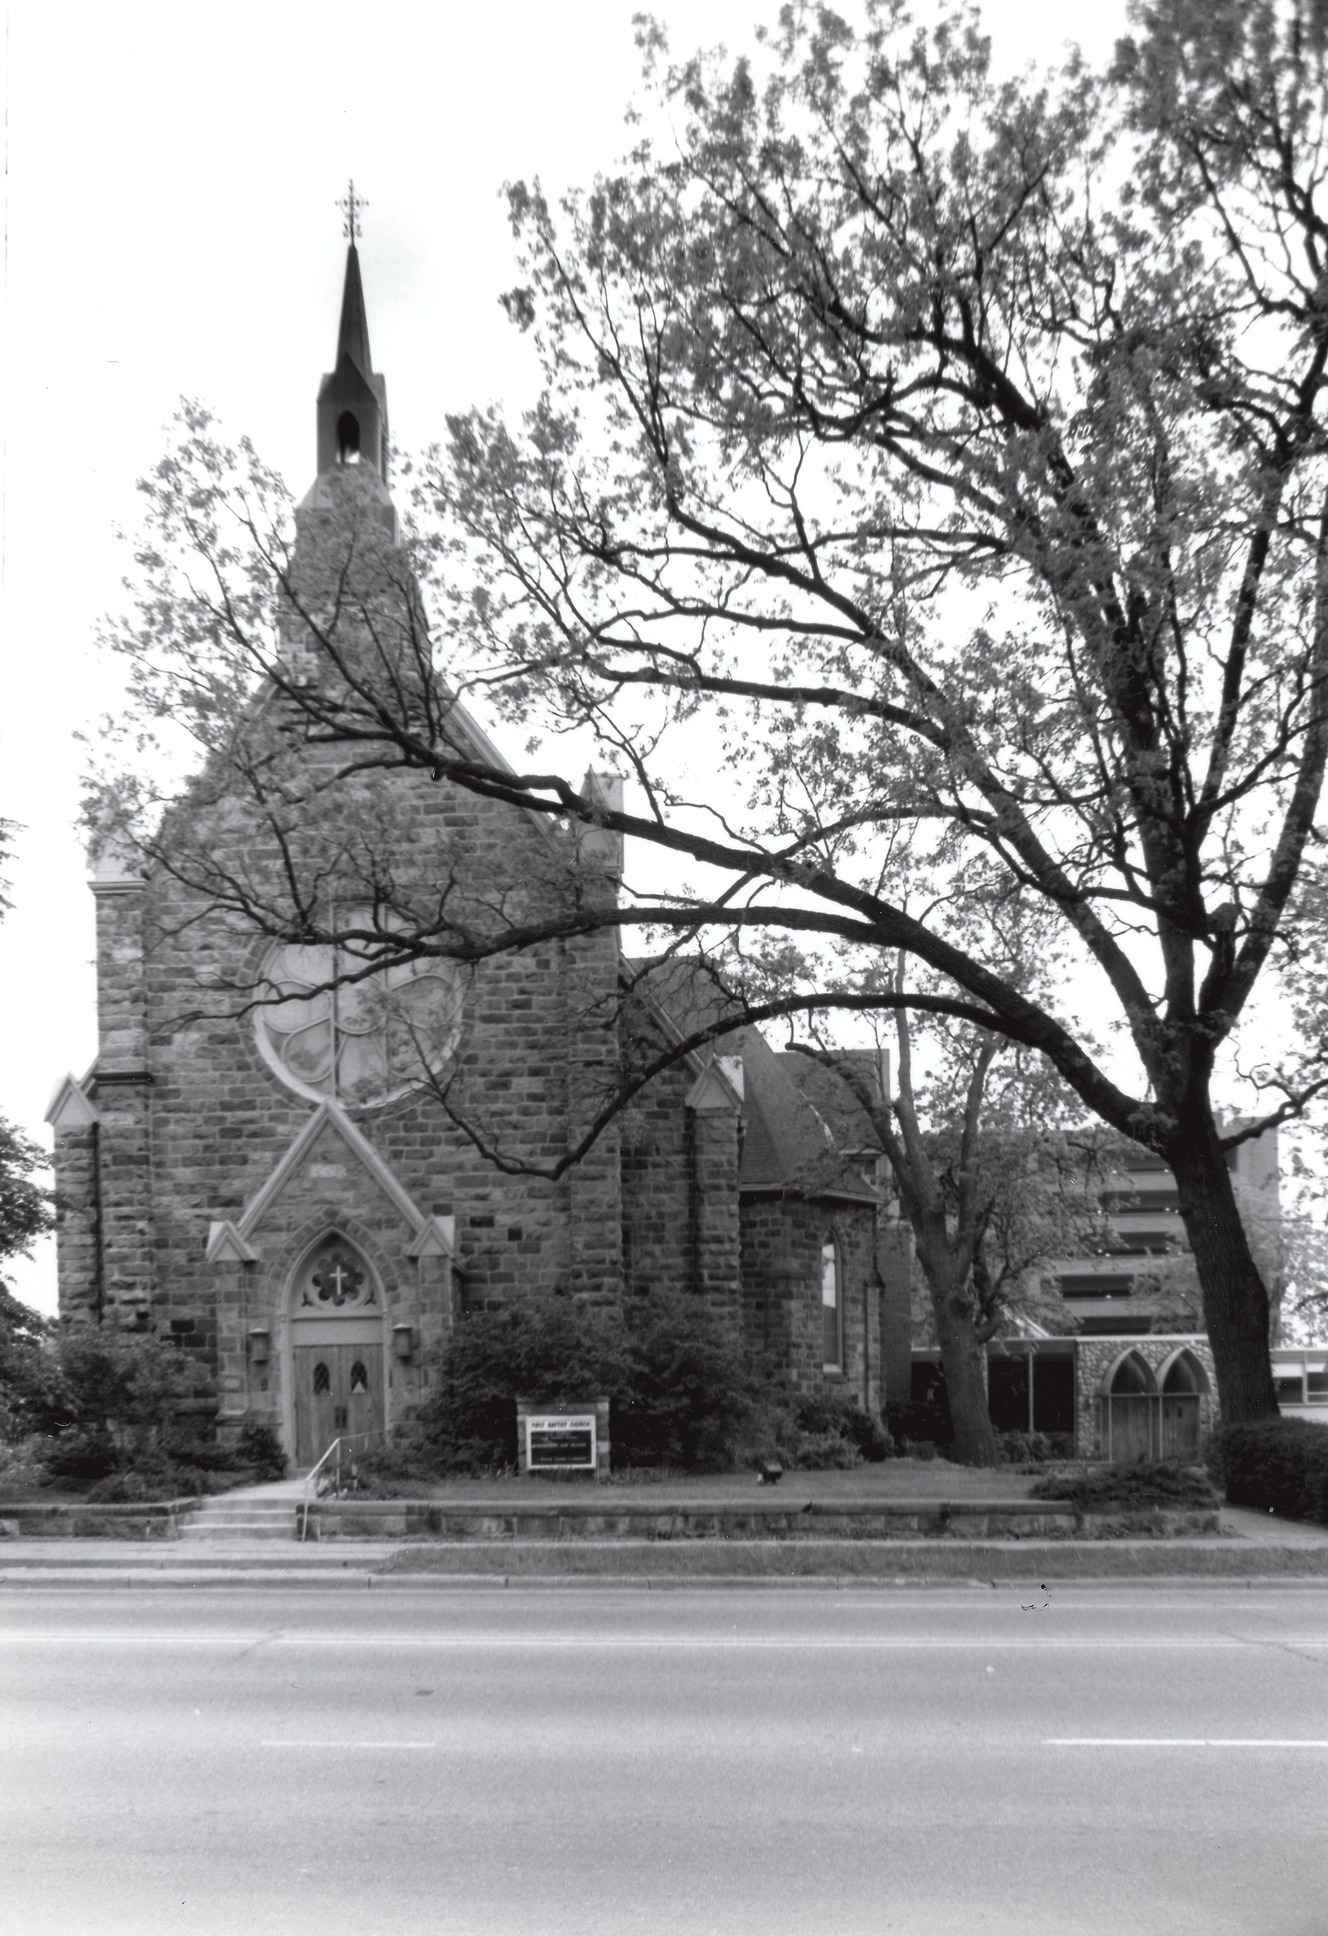 First Baptist Church, 1880 image